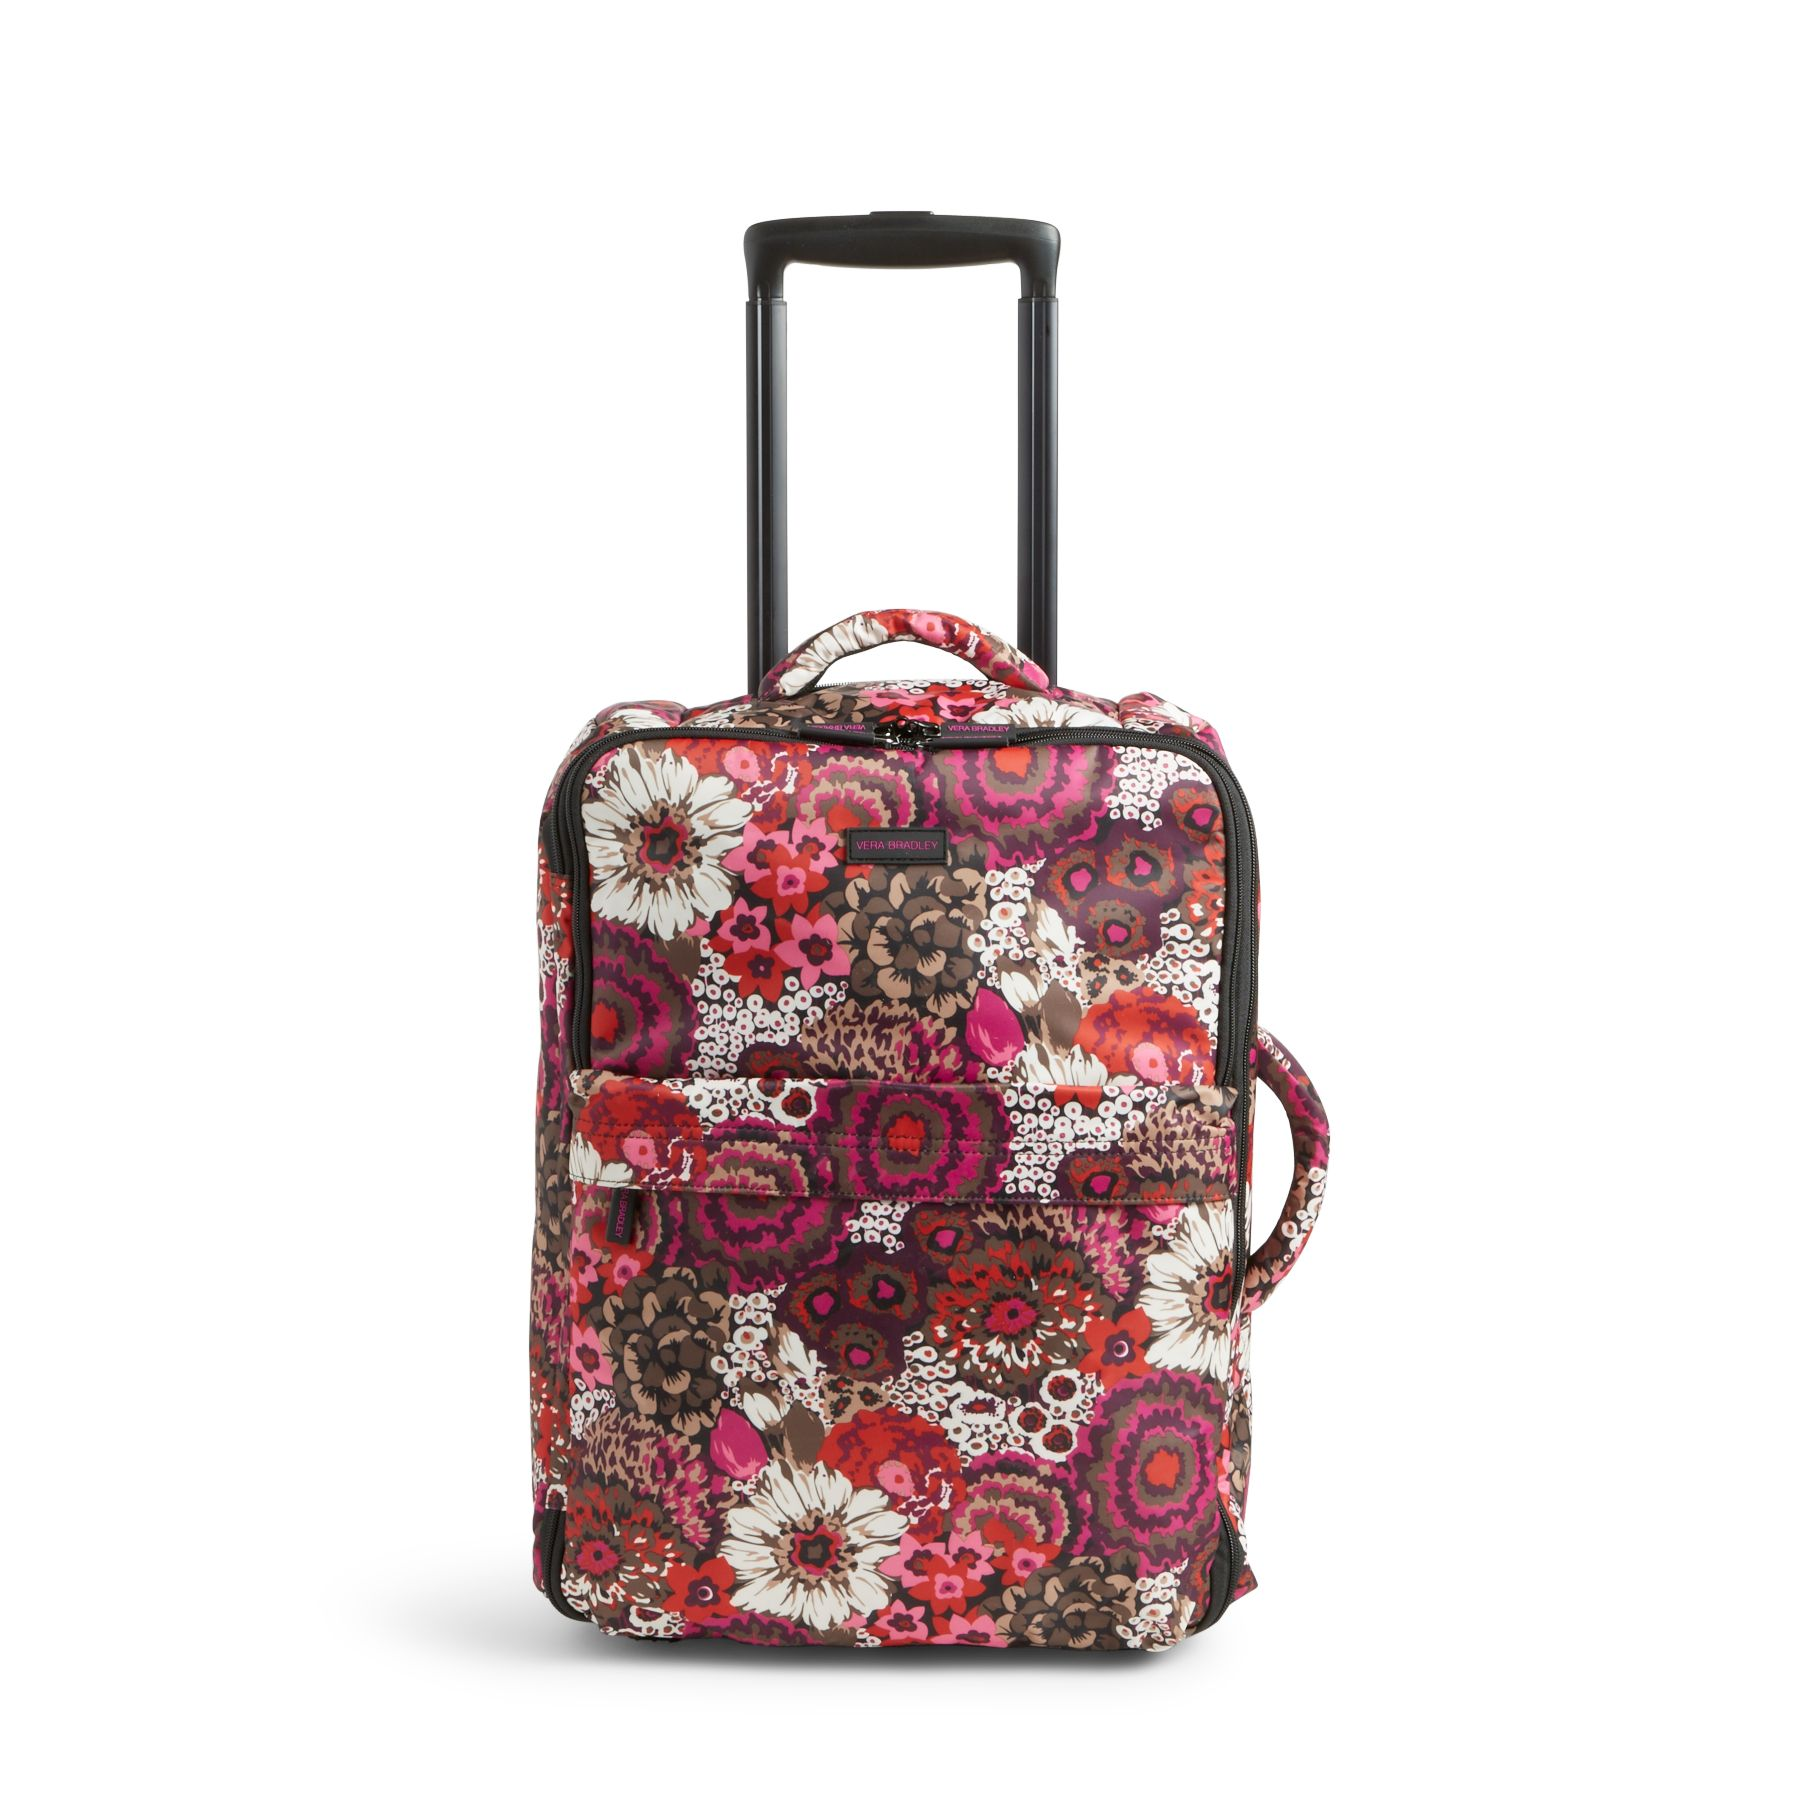 Vera Bradley Small Foldable Roller Luggage in Rosewood